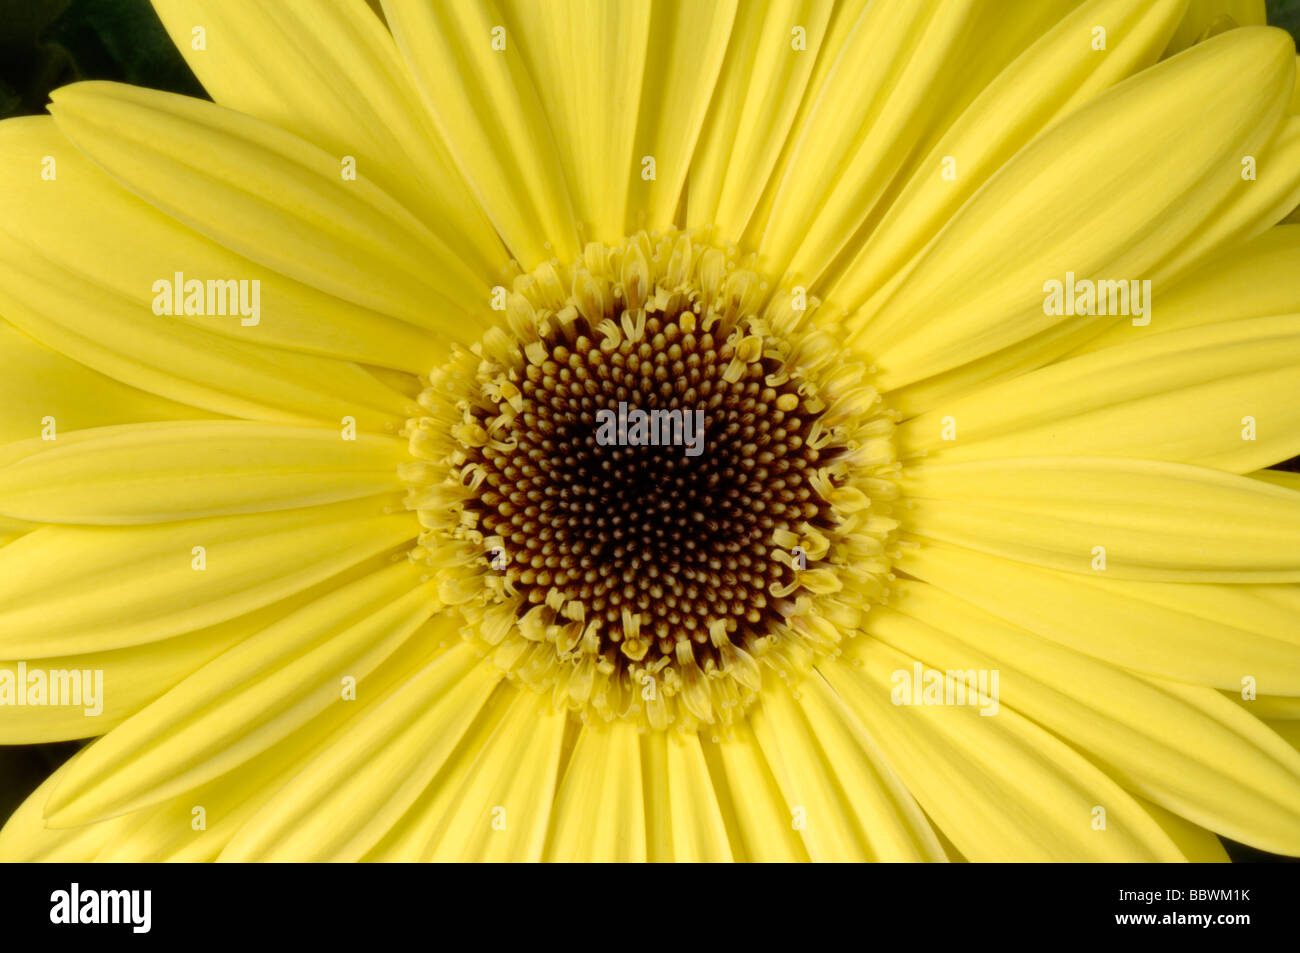 Yellow Gerbera composite flower with disc and ray florets - Stock Image